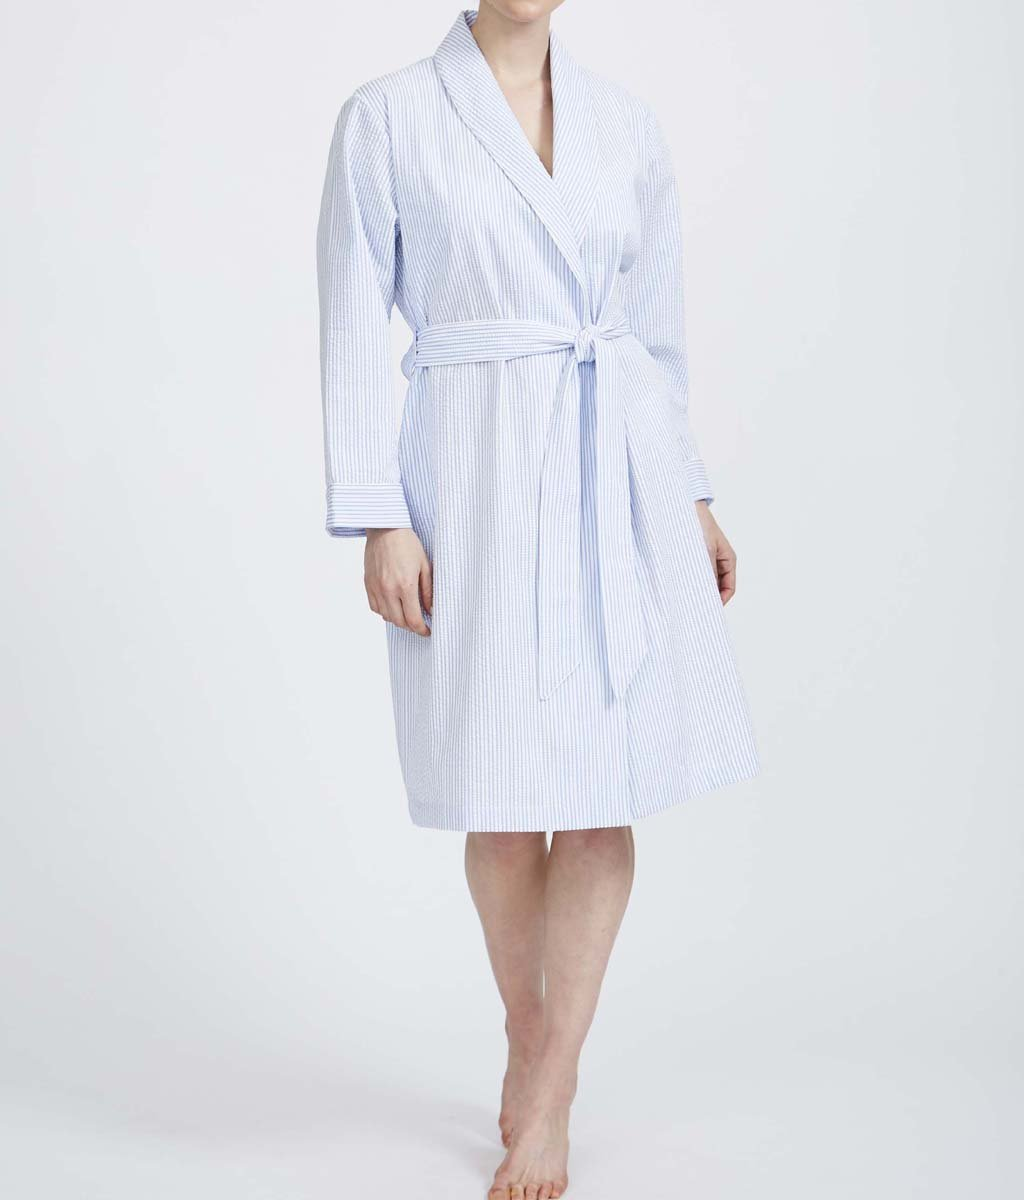 British Boxers Cotton Seersucker (Porthtowan) Robe - Sandra Dee - Product Shot - Front